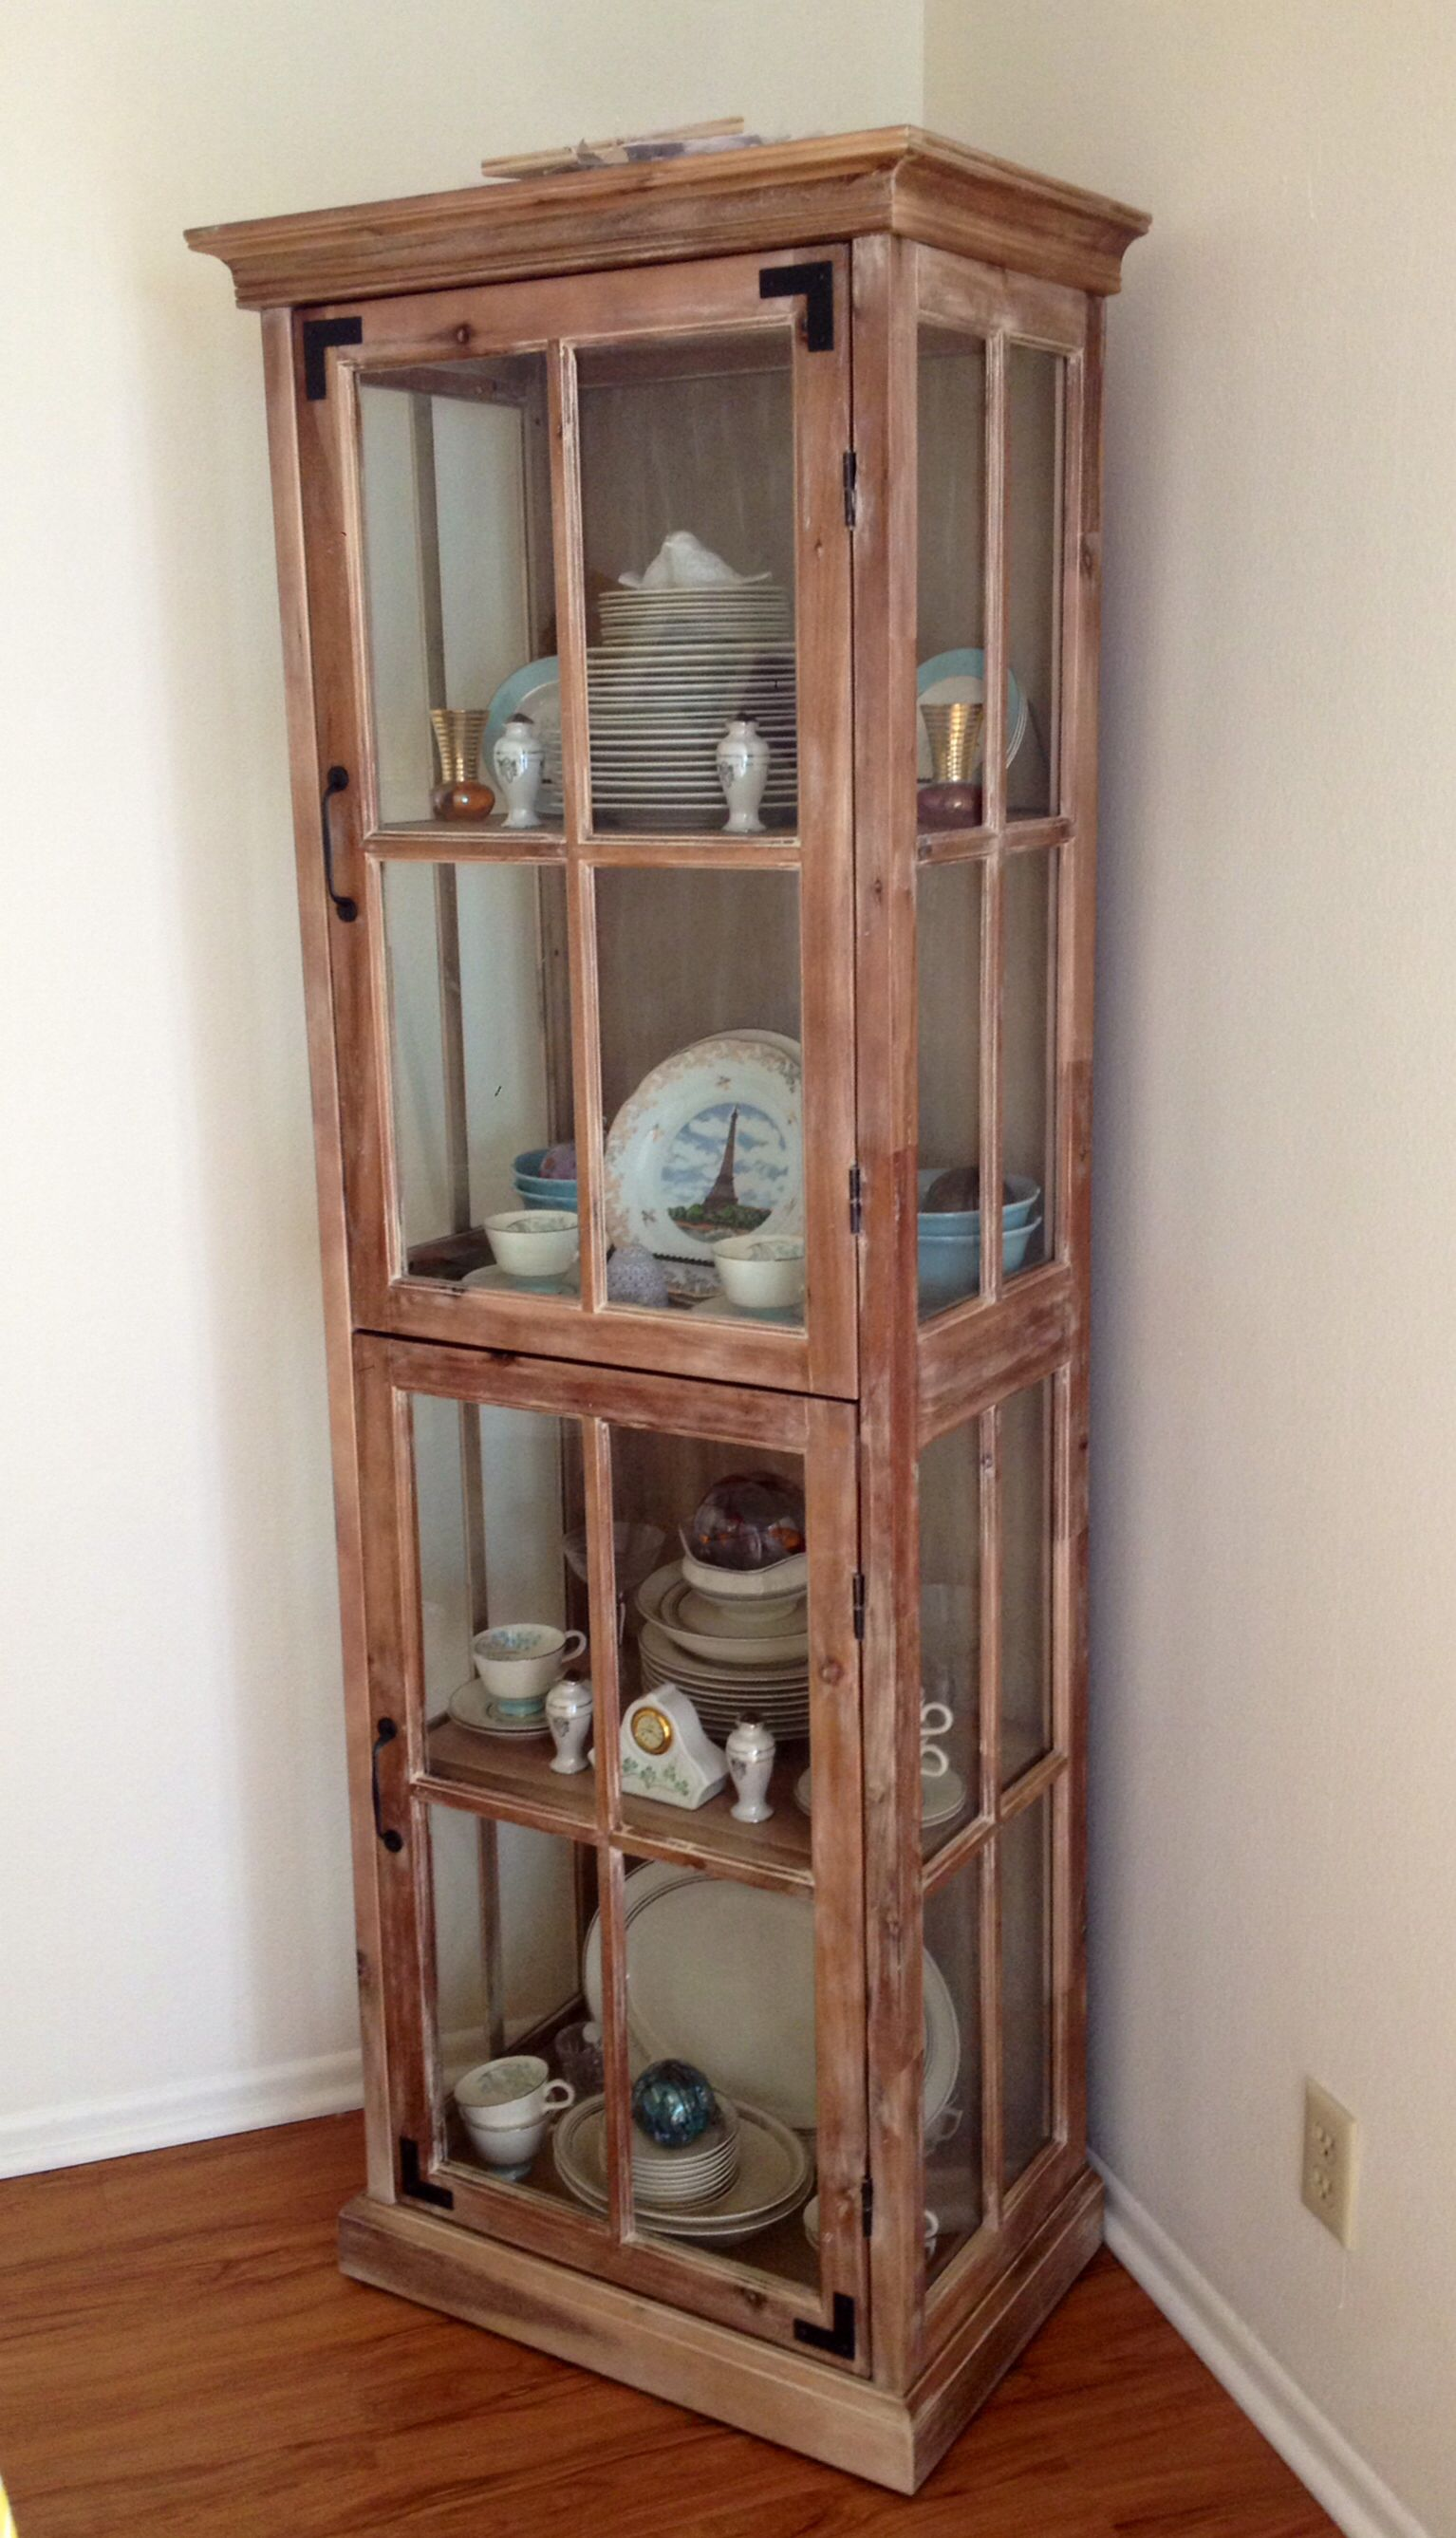 High Quality Cost Plus World Market Curio Cabinet Used As China Hutch In Dining Room.